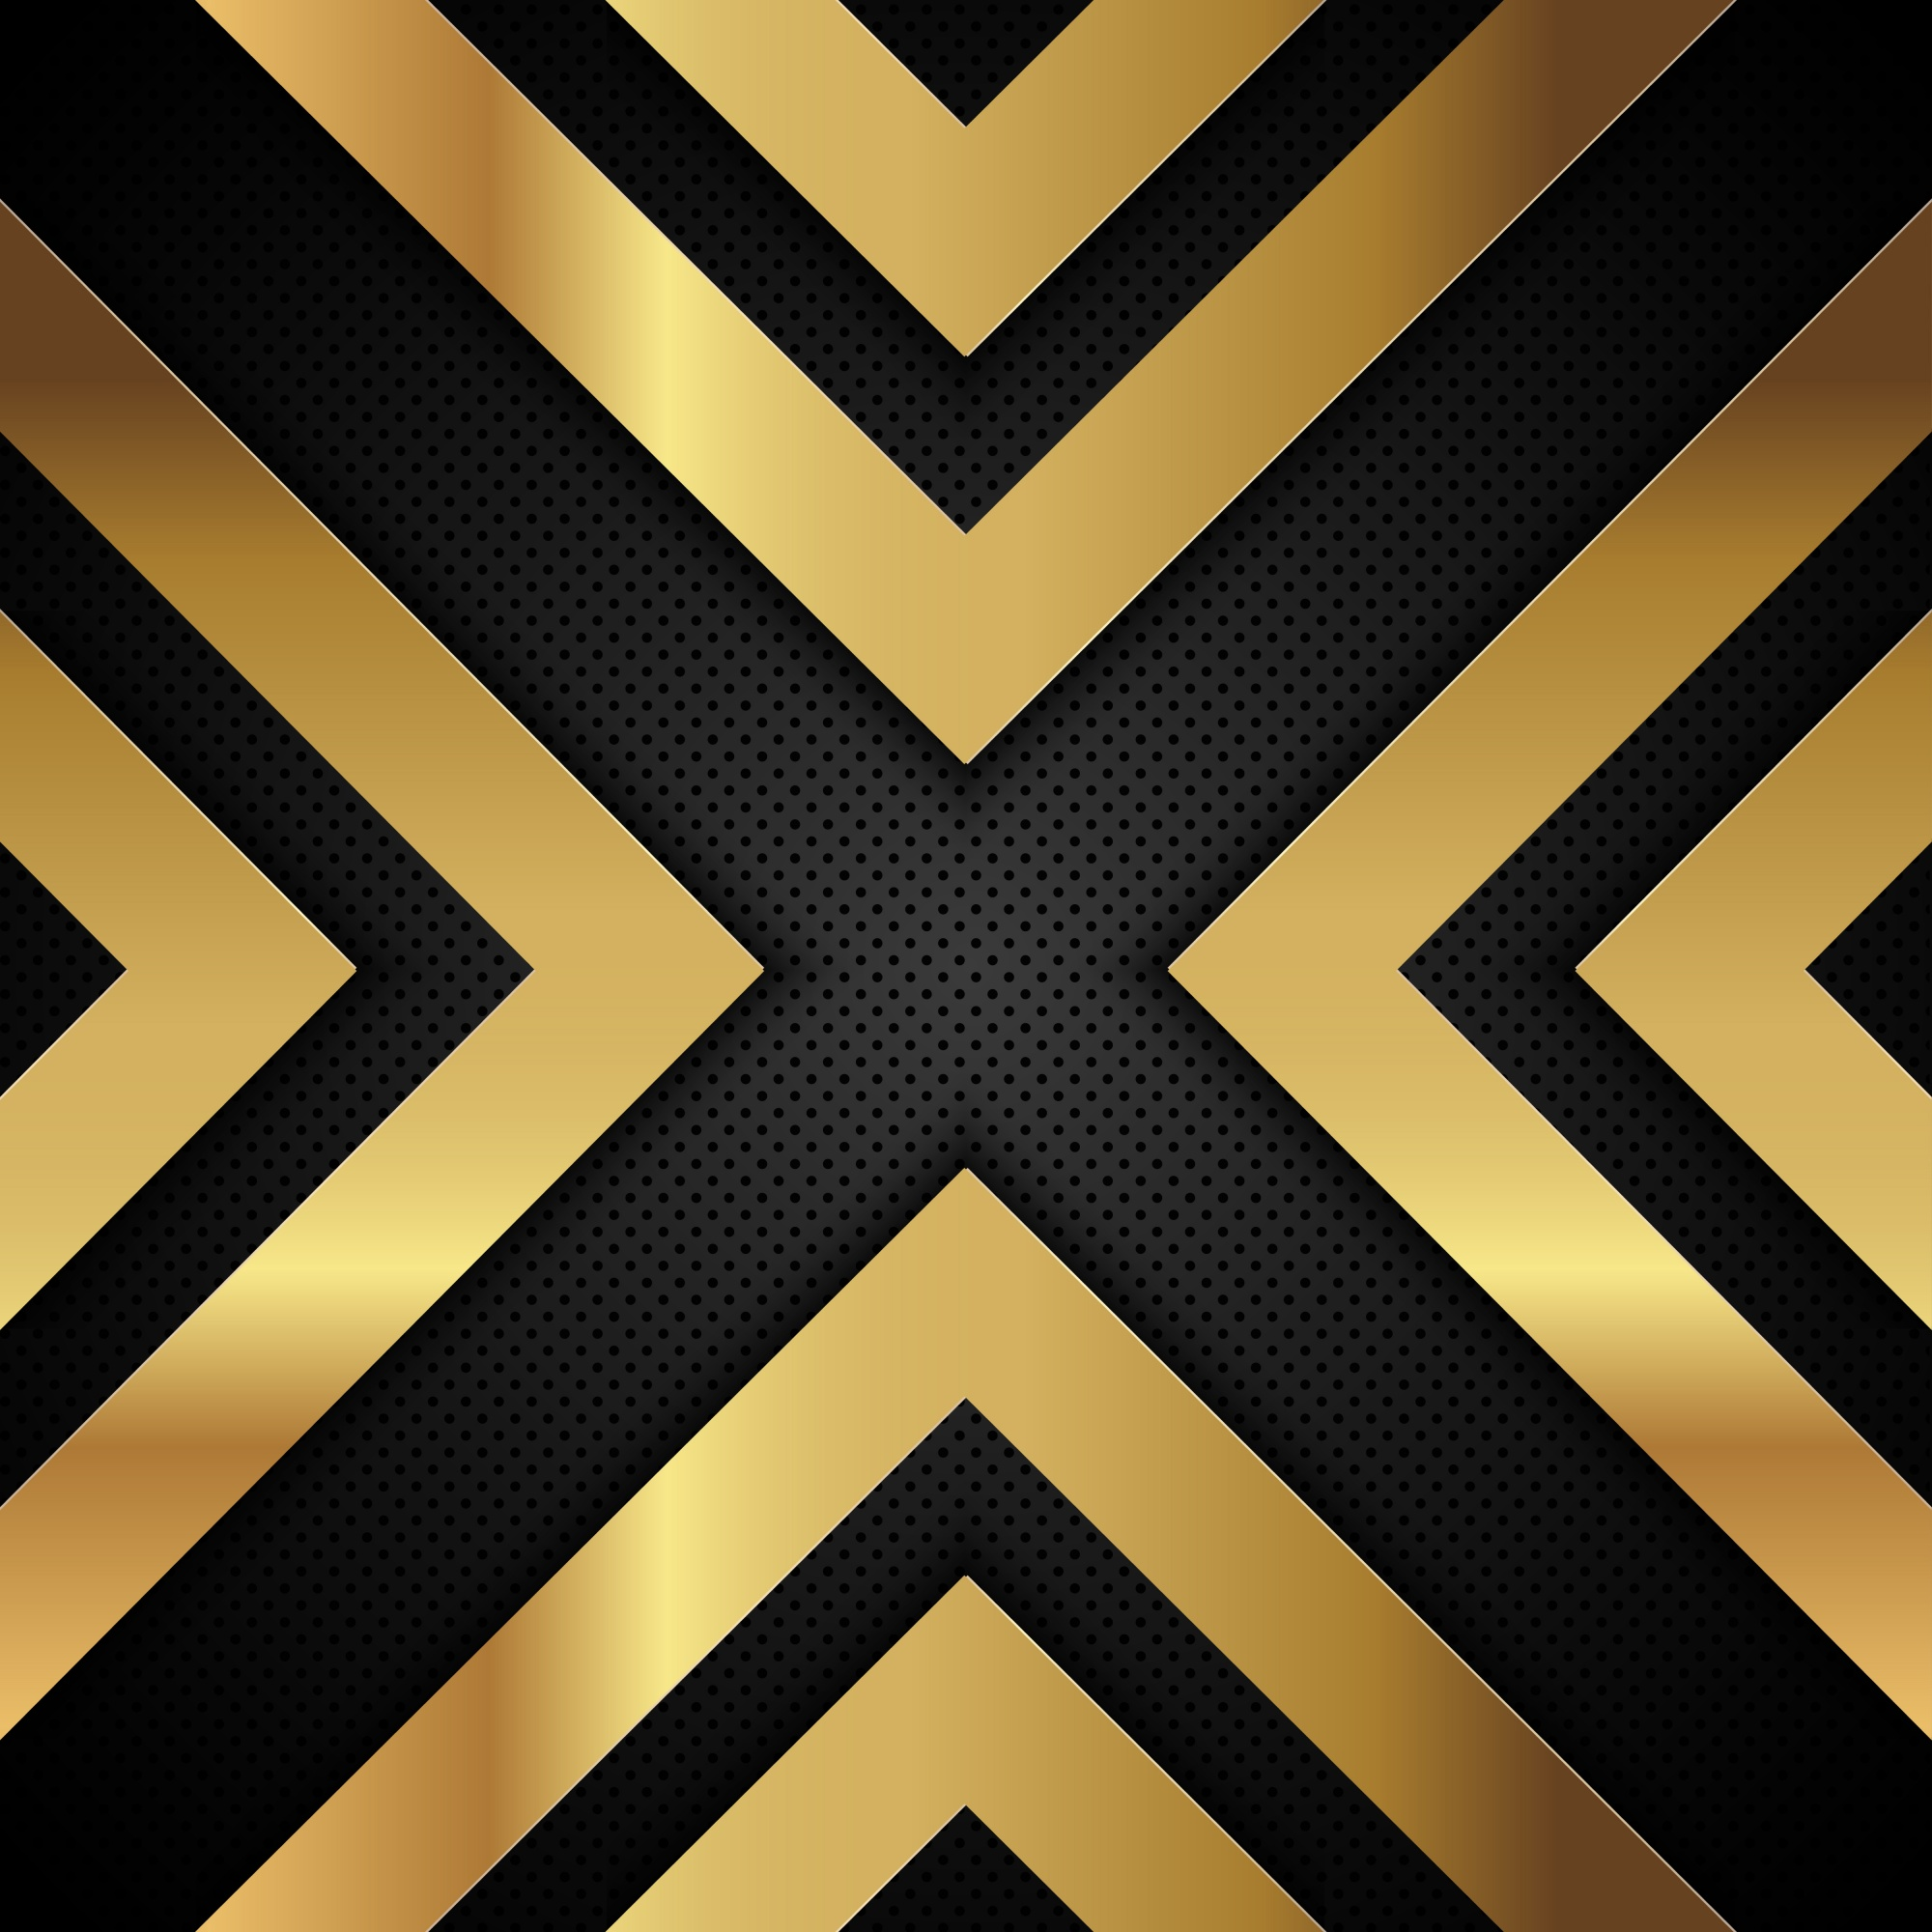 Gold metallic arrow shapes on a perforated metal background